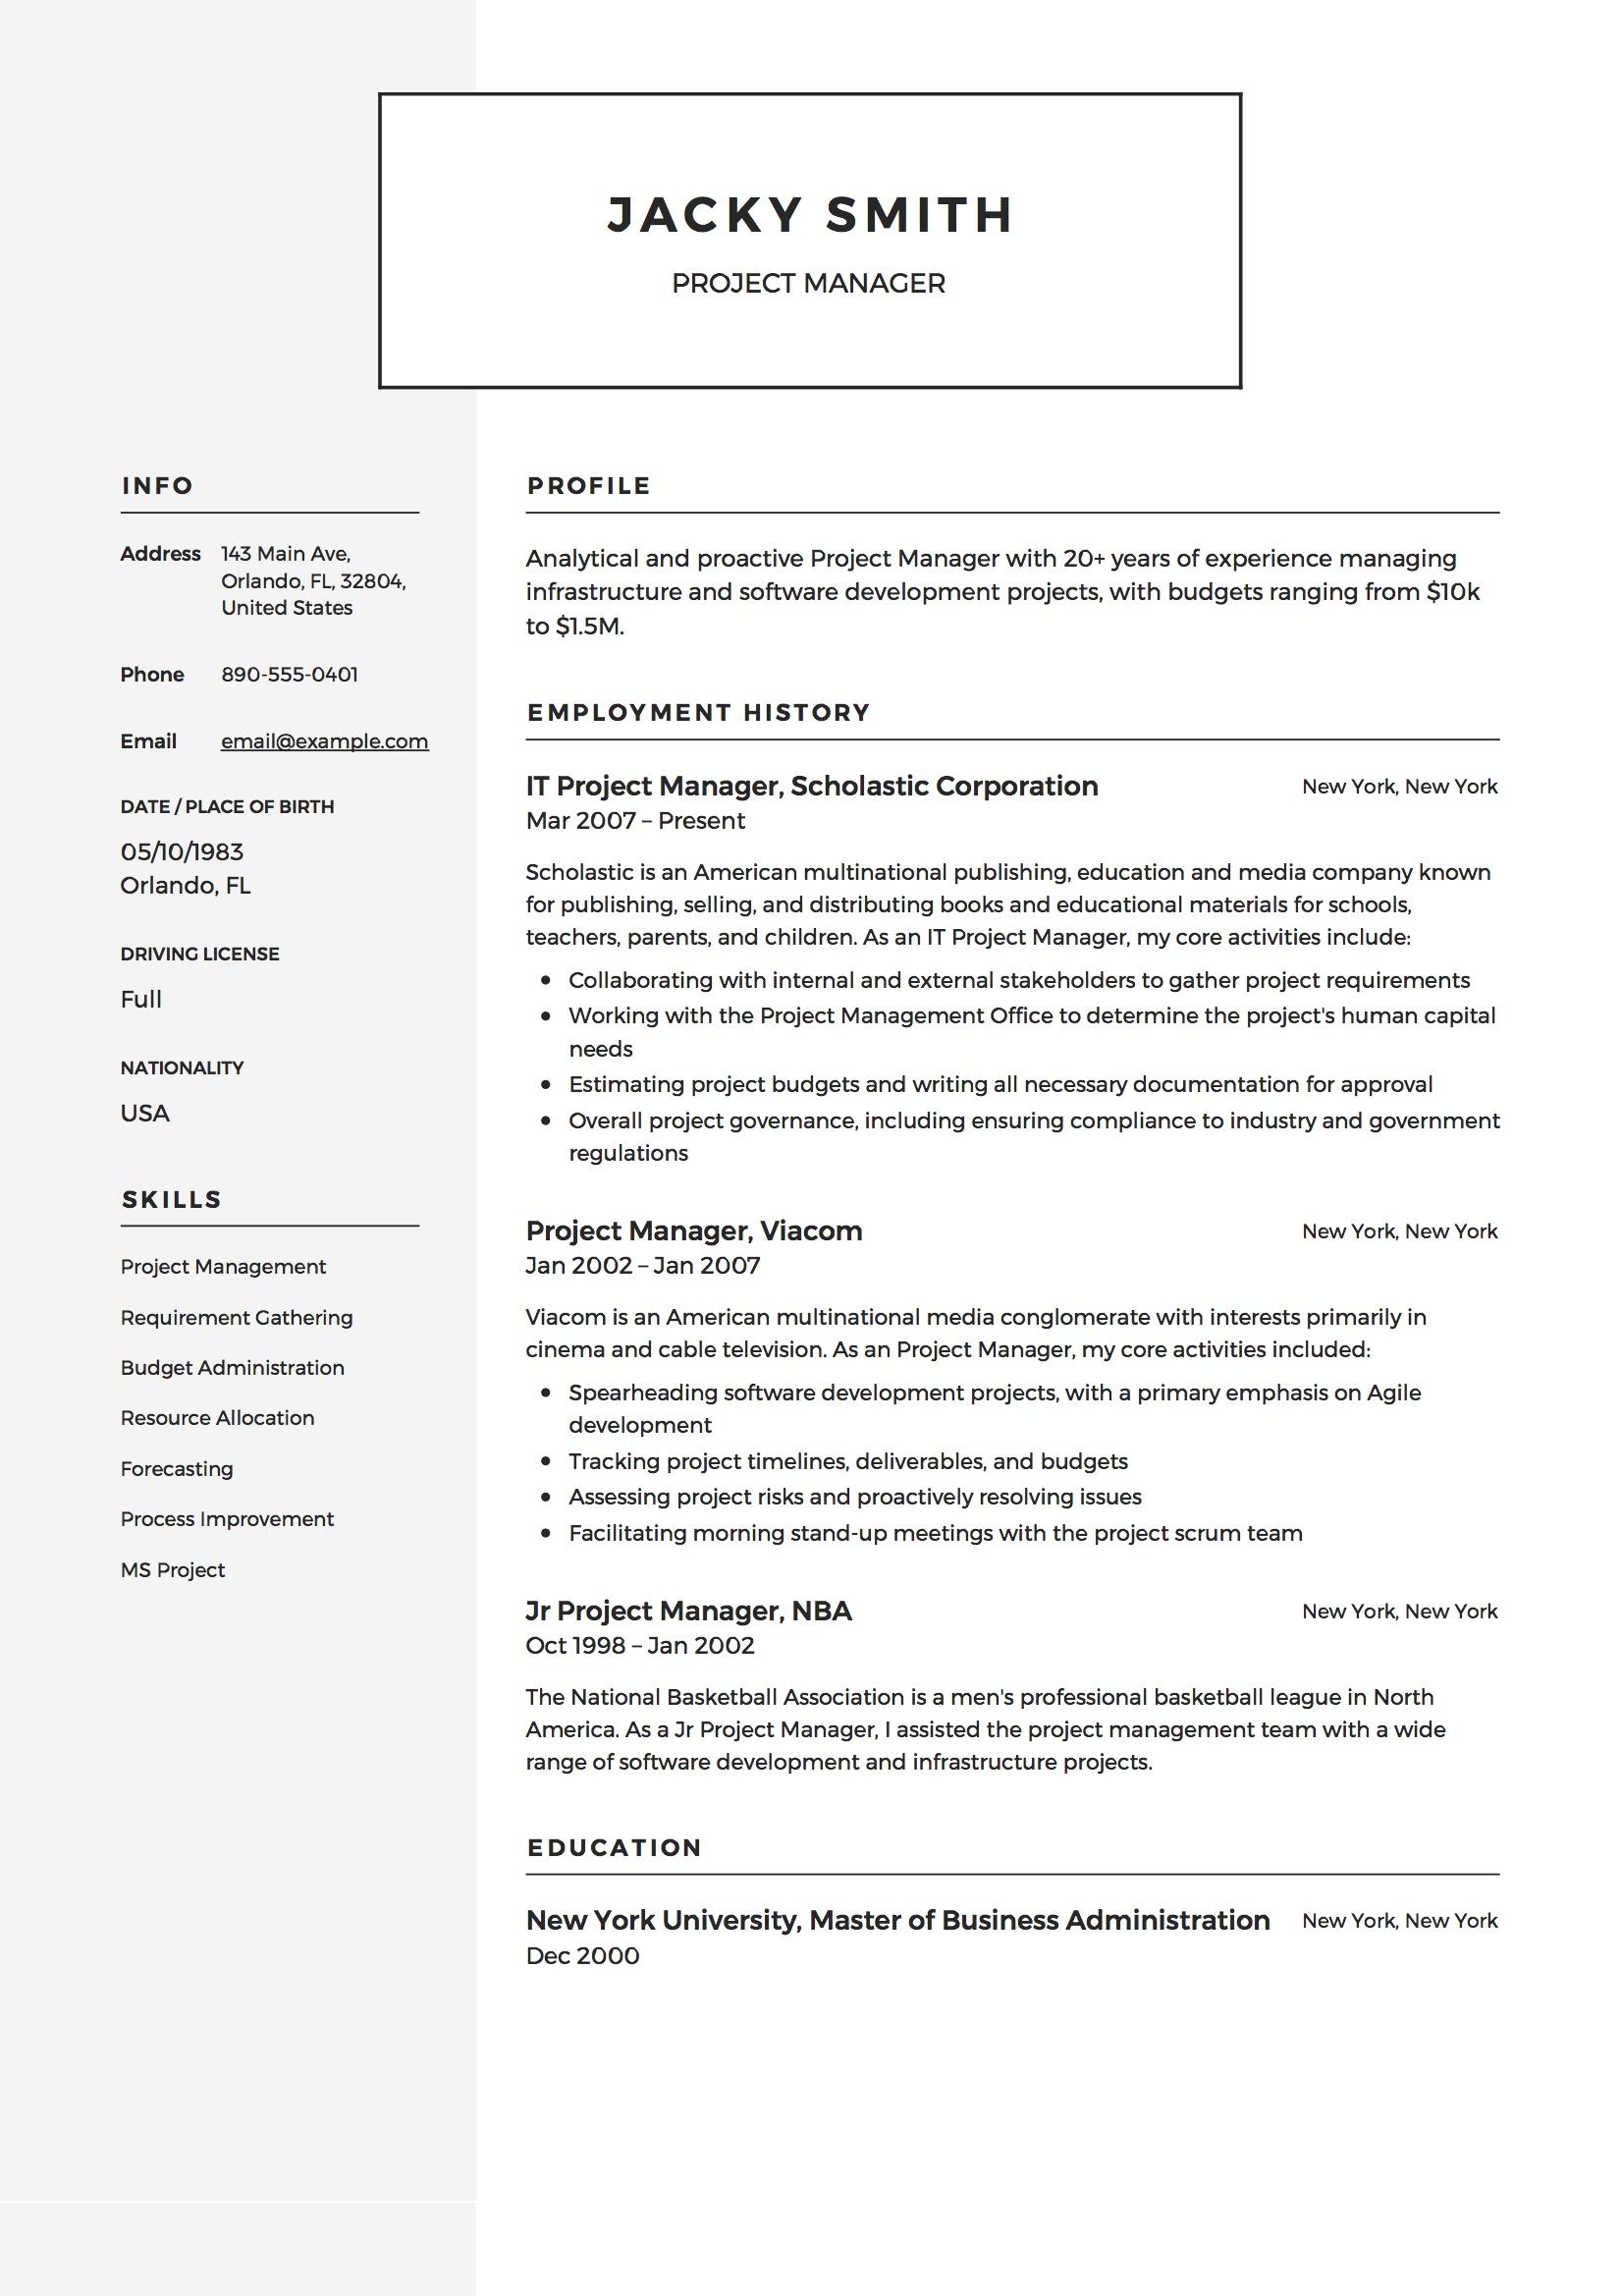 12 Project Manager Resume Sample(s) - 2018 (Free Downloads)